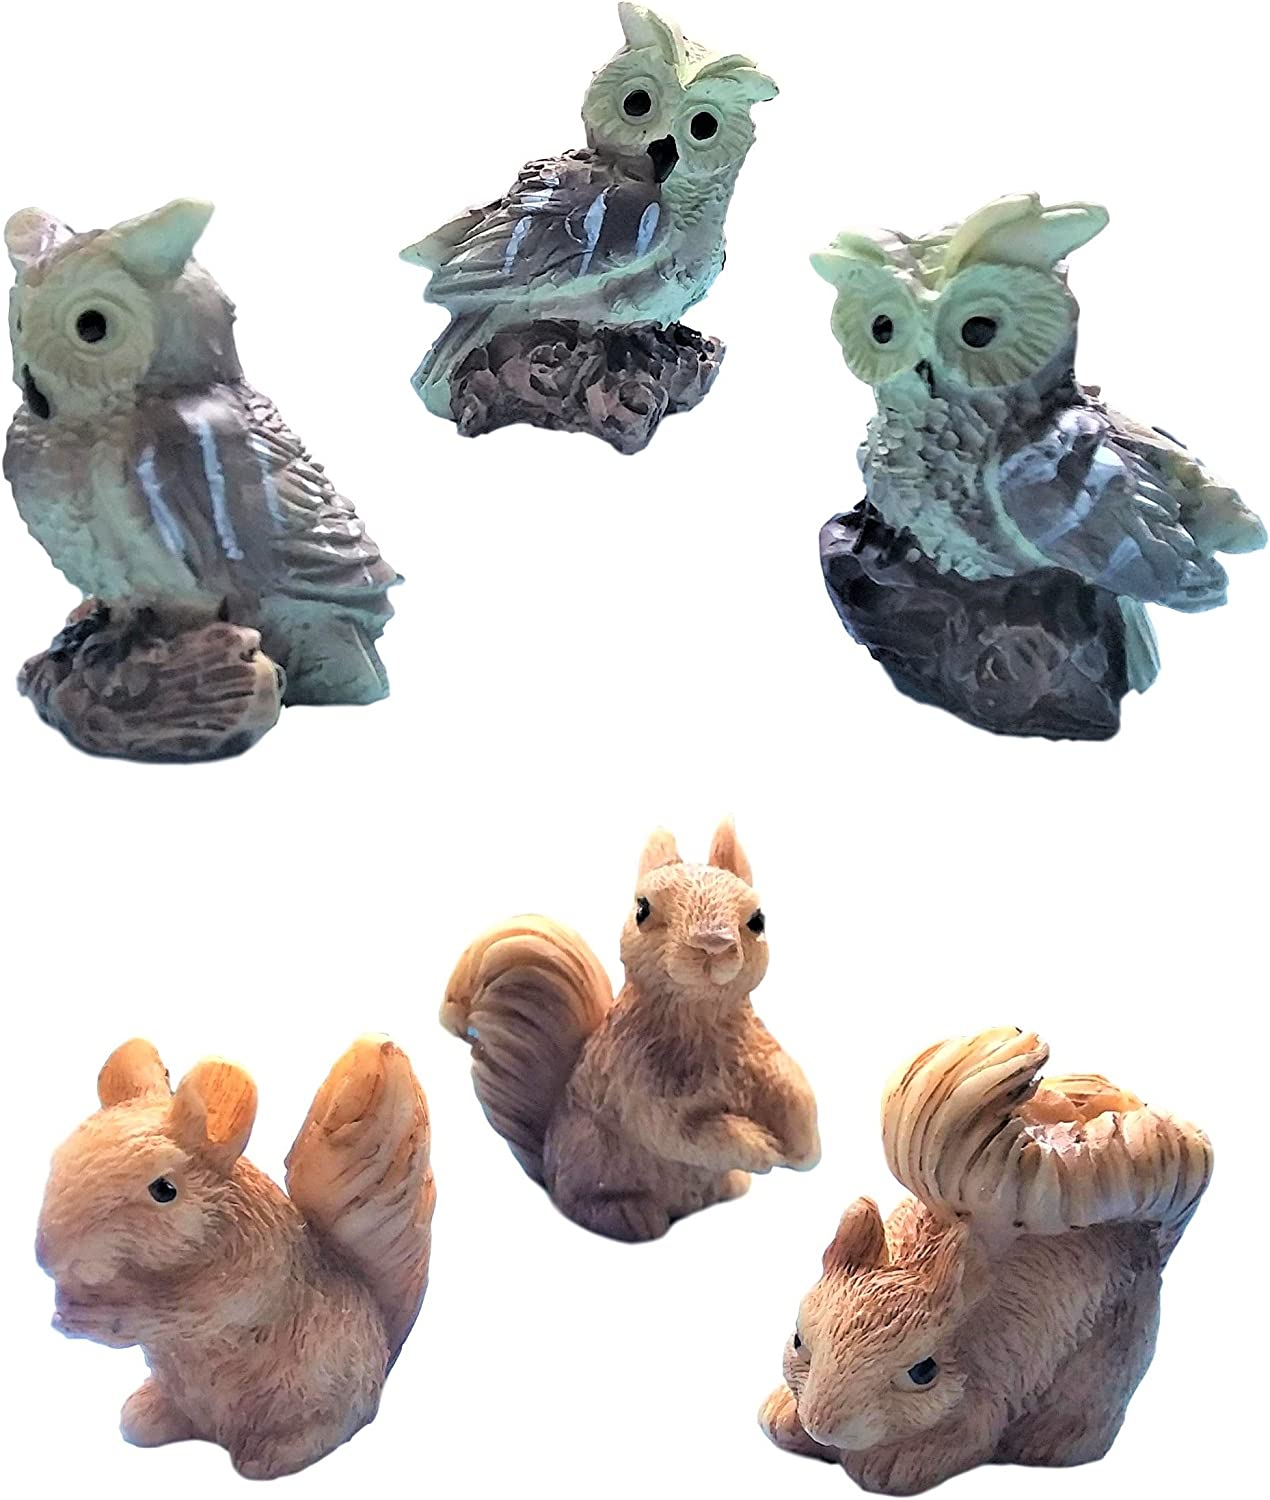 "Miniature Fairy Garden Realistic Tiny 1.25"" Owls and 1.2"" x 1"" x 0.70"" Squirrels - Made of Resin - for Outdoor or House Decor - Bundle of 6 Mini Garden Animals - Farm Woodland Creatures"